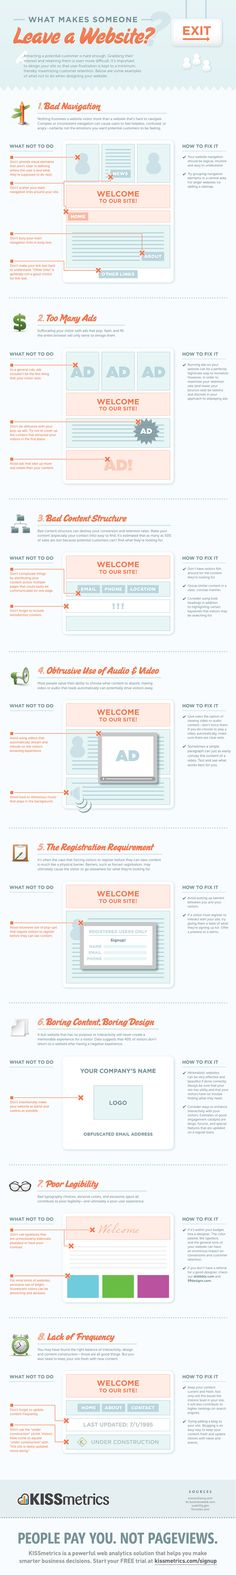 #Website #design #tips: what makes someone leave a website?